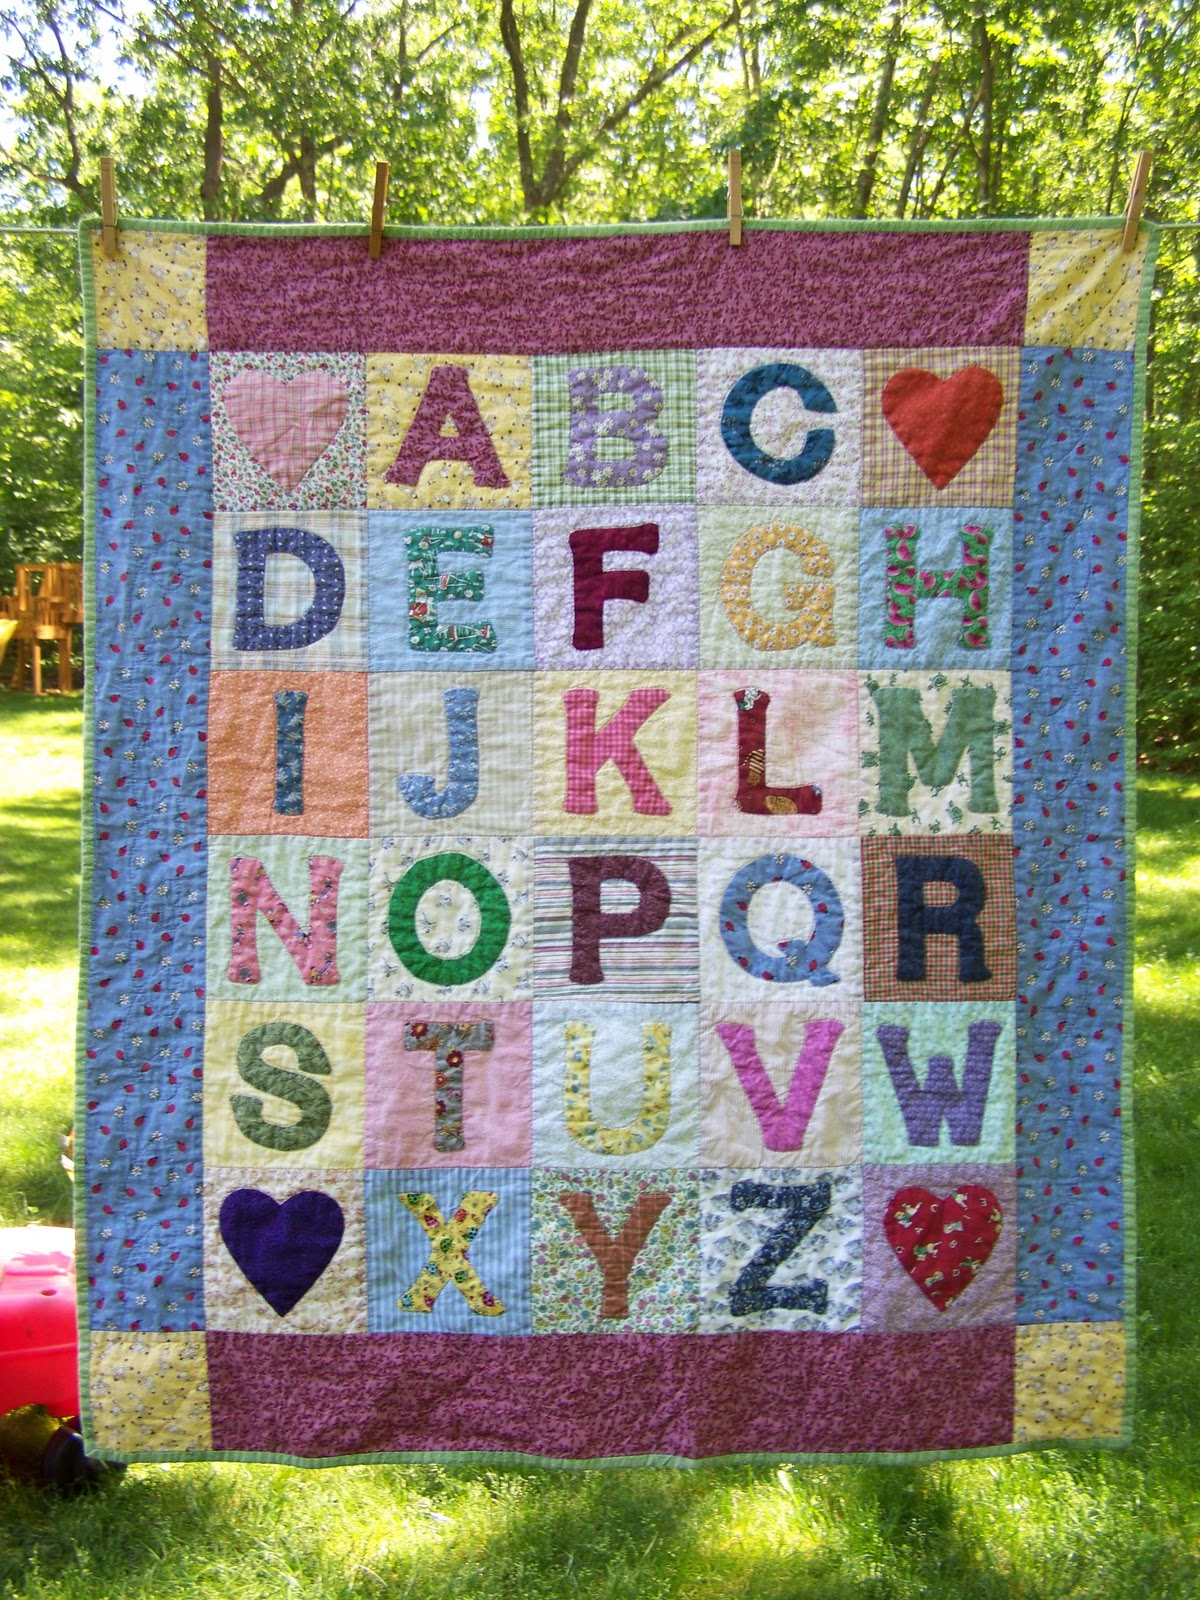 When Life Gives You Scraps, Make Quilts!: James' ABC Quilt